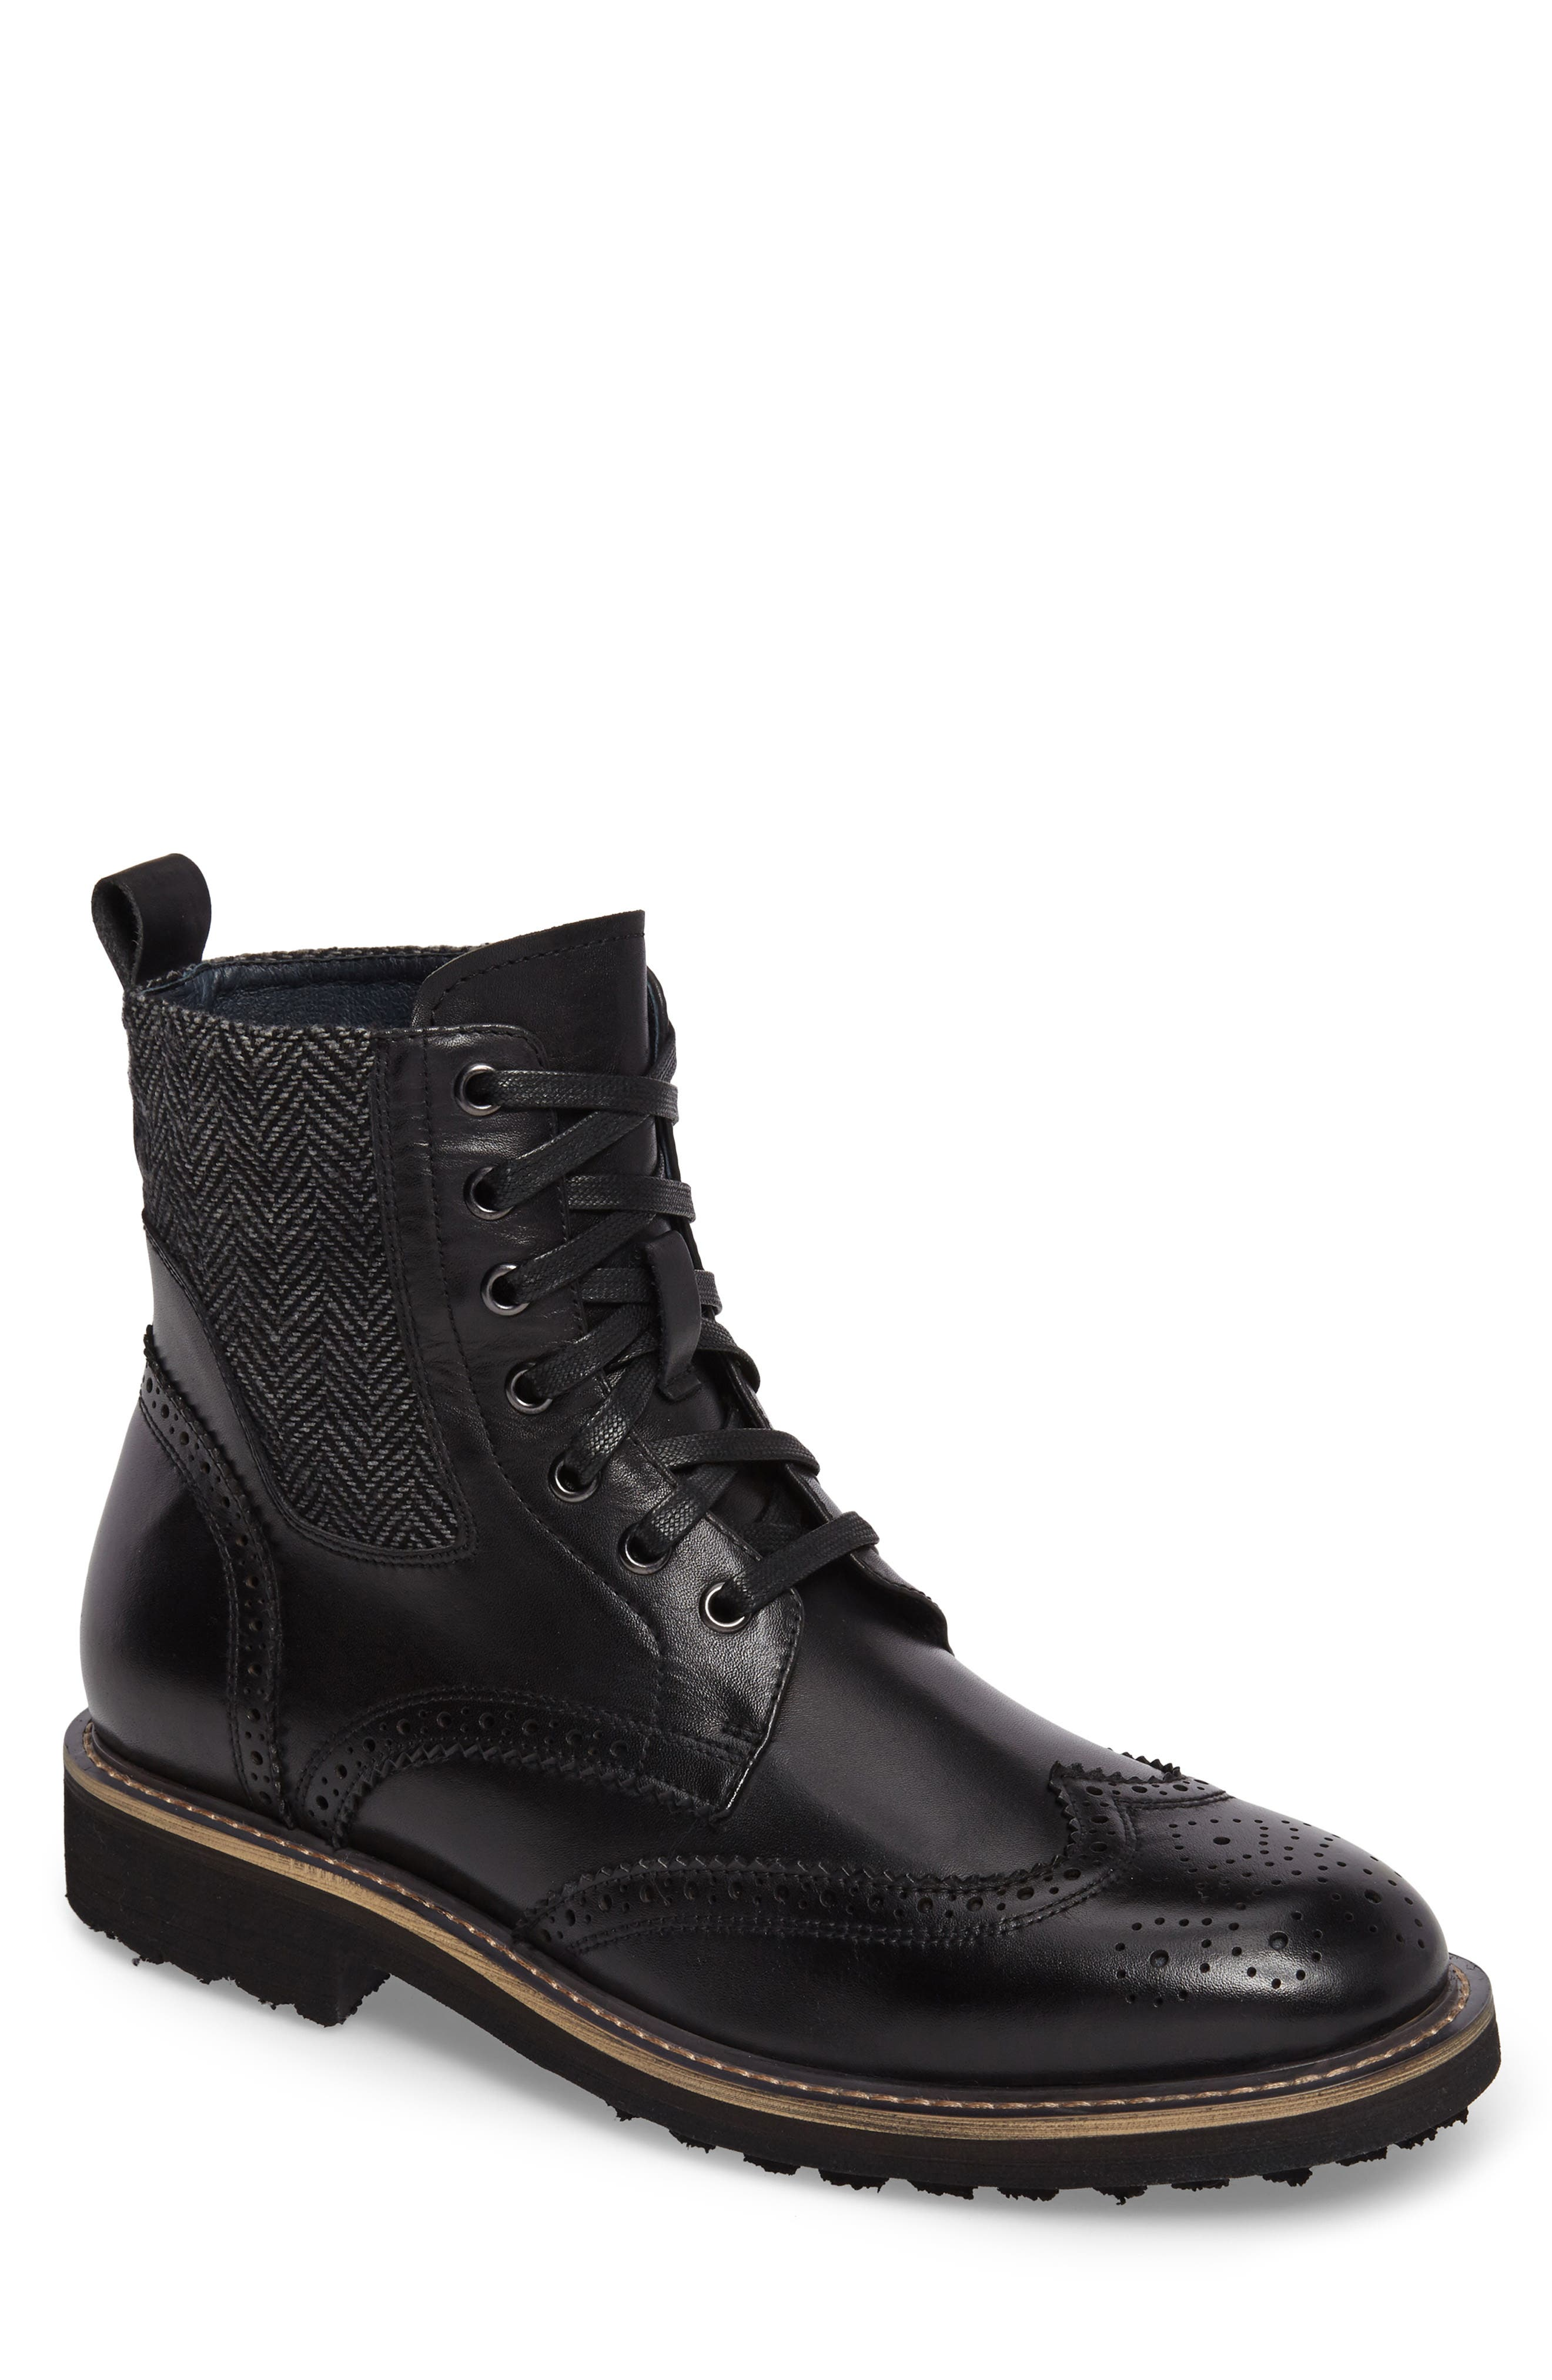 Farber Wingtip Boot,                         Main,                         color, BLACK LEATHER